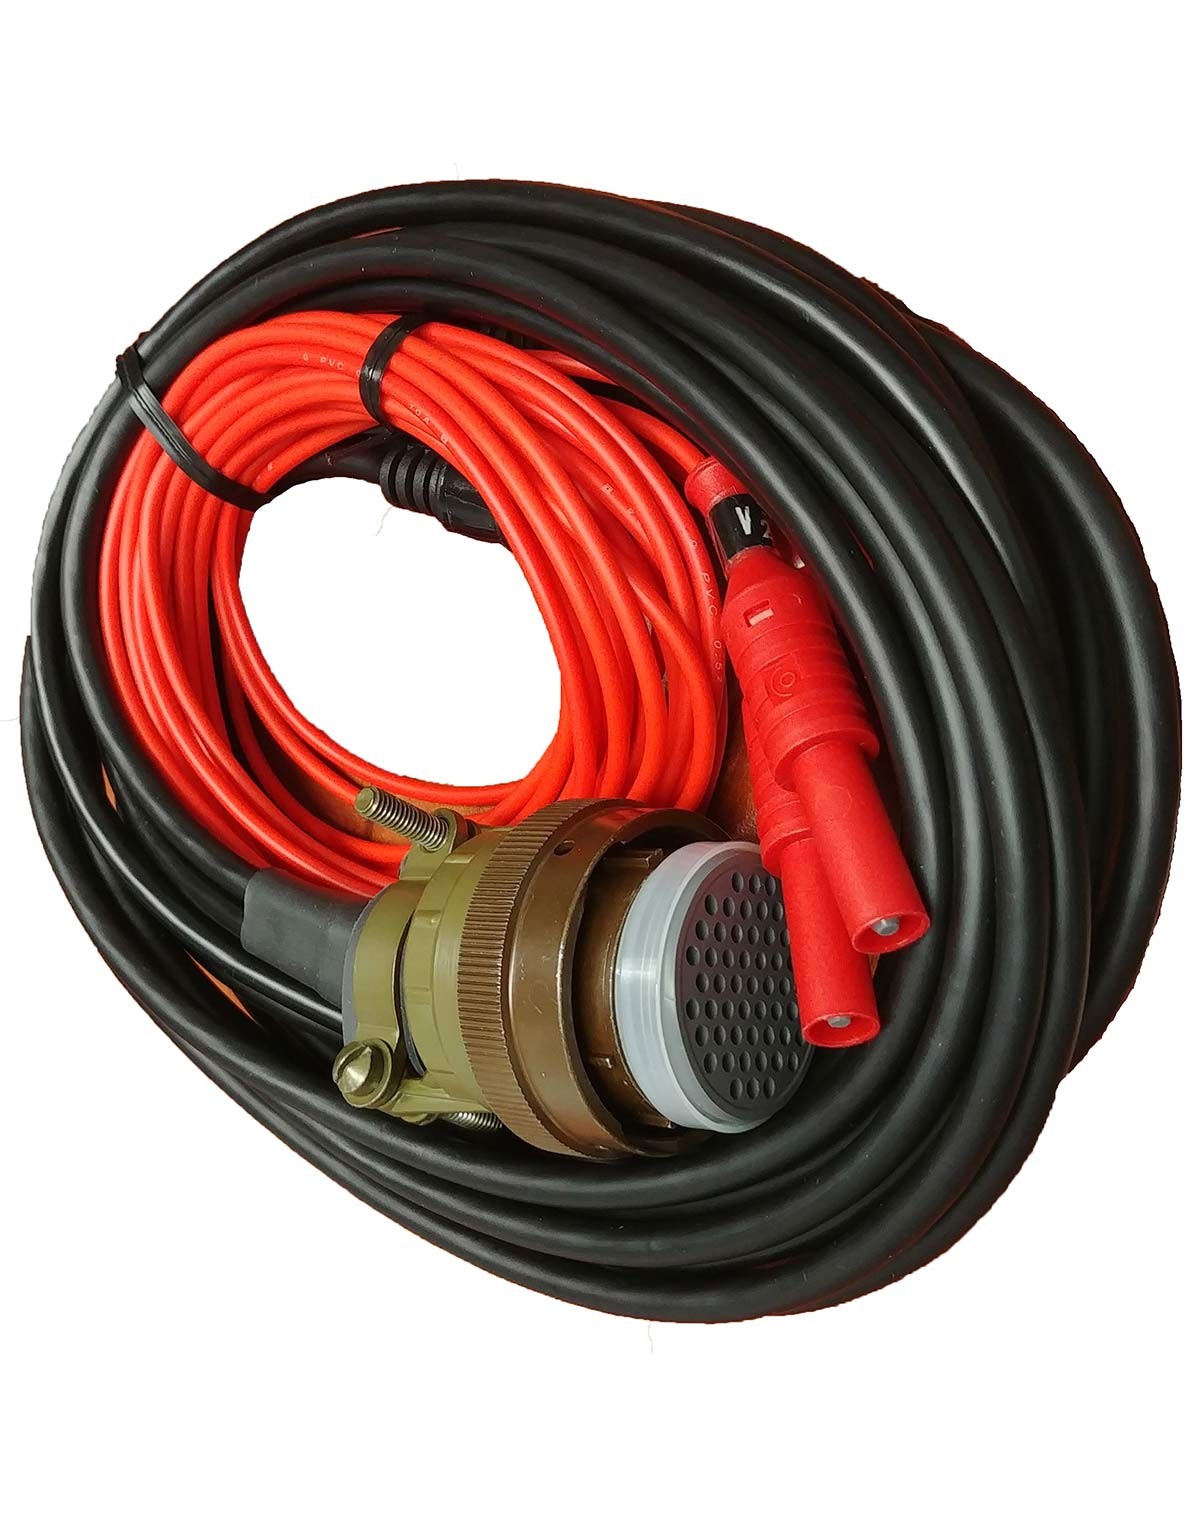 ALL-SAFE PRO™ Connection Box Connection cable (6') from ATPOL II™ to ALL-SAFE PRO®